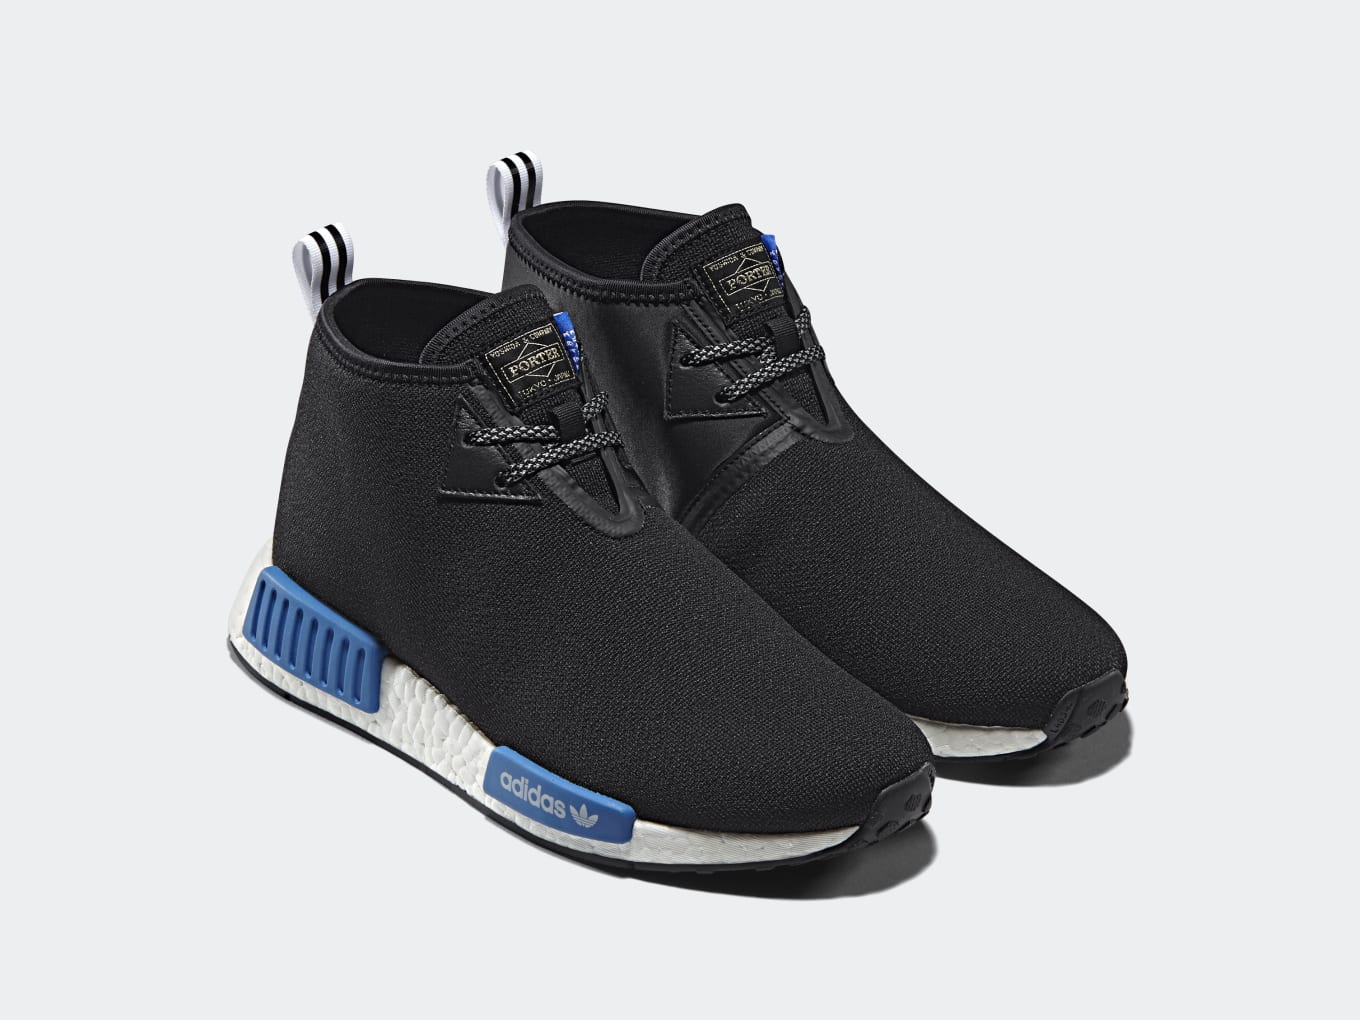 bf298783950994 Porter x Adidas NMD CS1 CP9718 Release Date